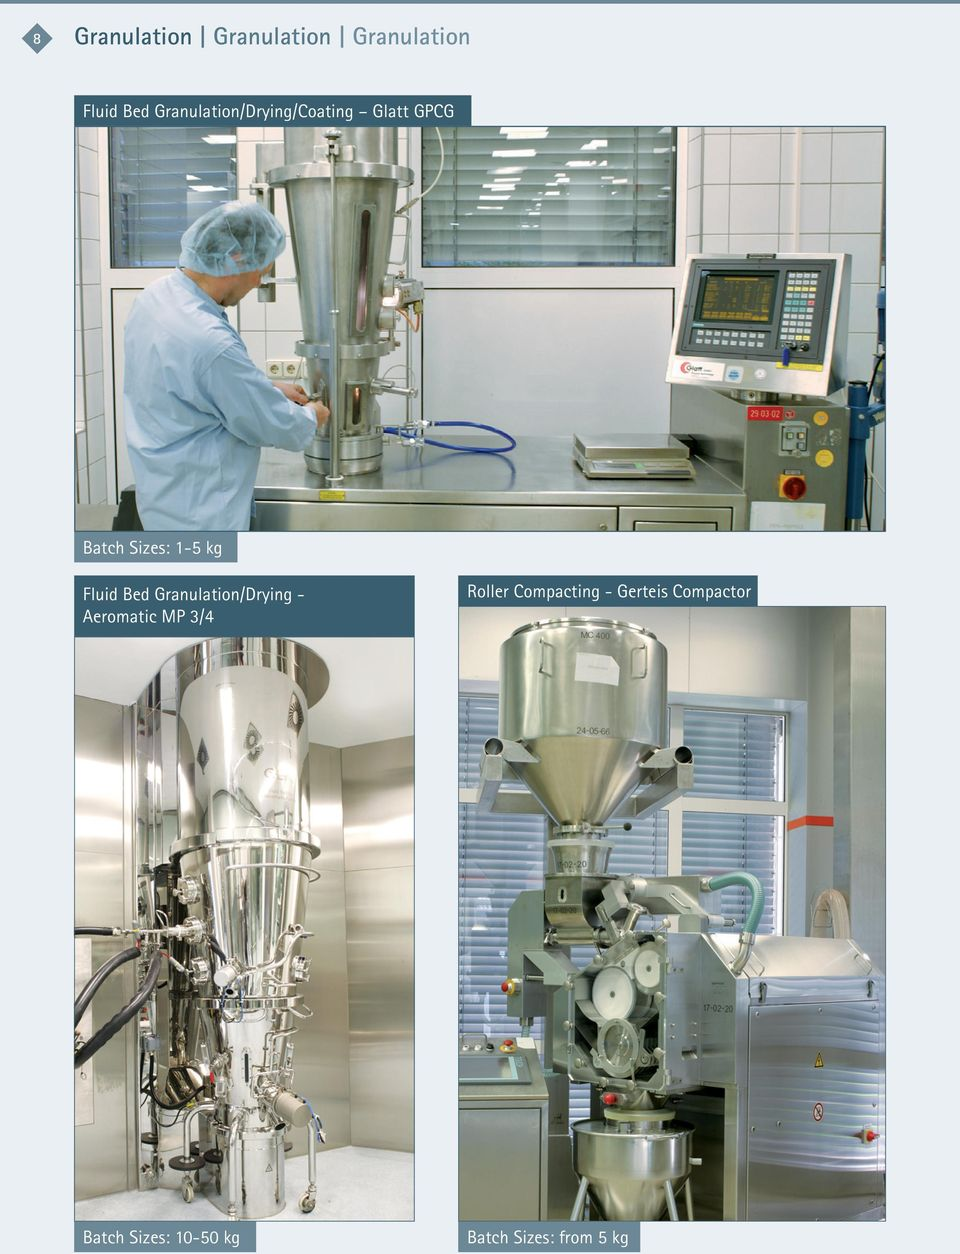 Fluid Bed Granulation/Drying Aeromatic MP 3/4 Roller